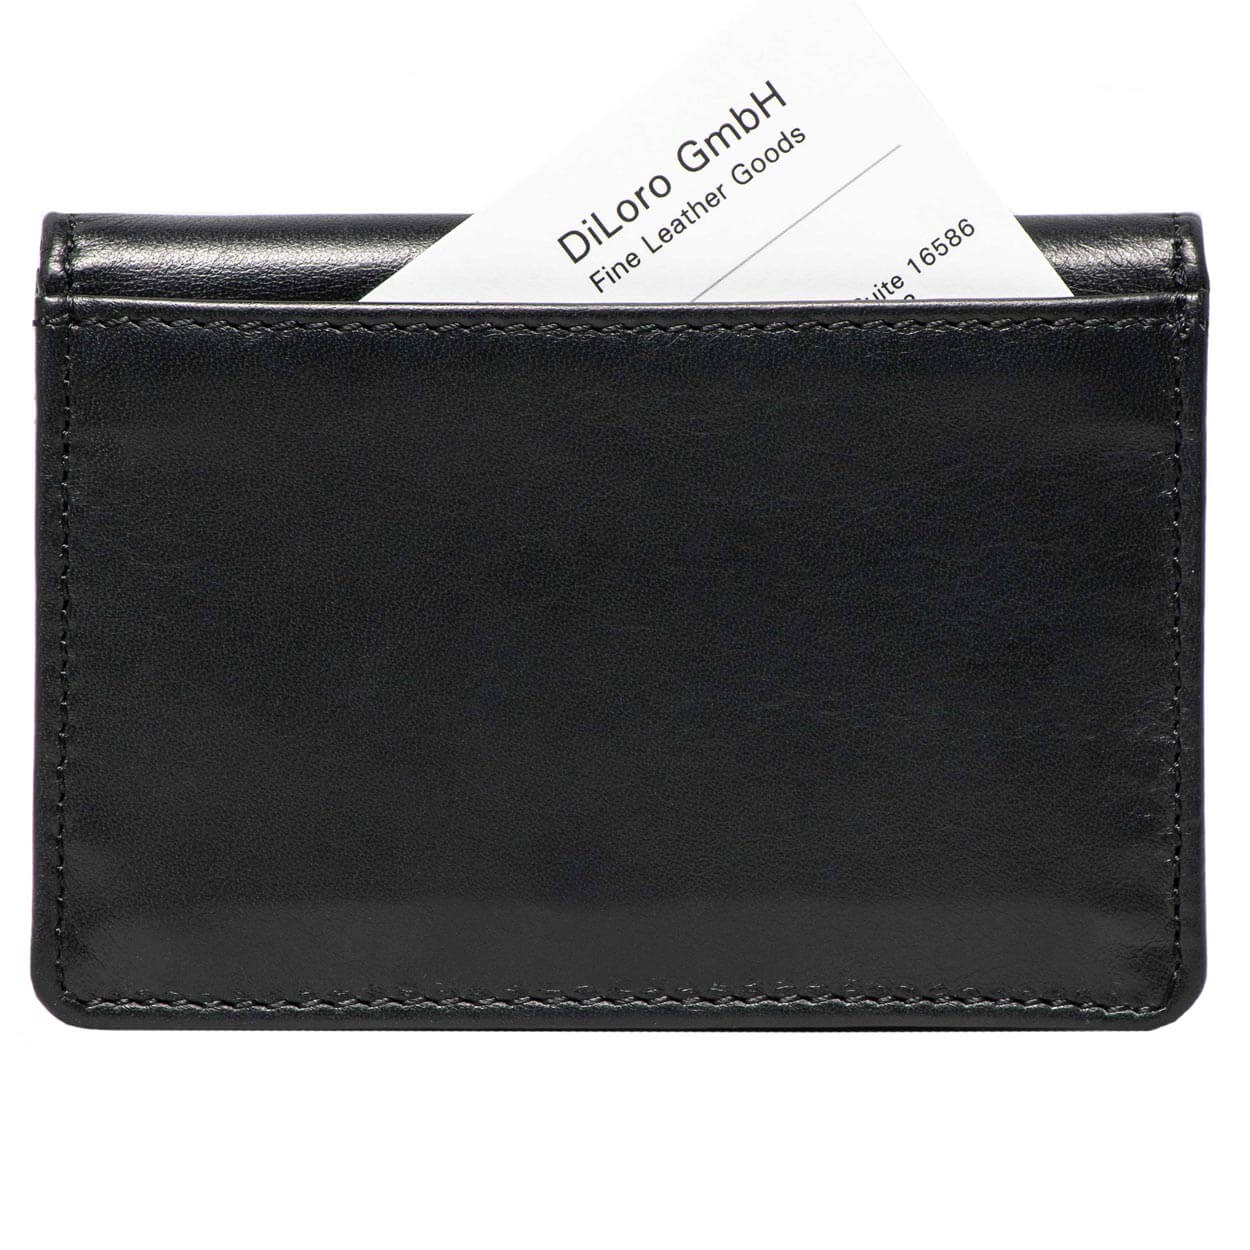 DiLoro Italy RFID Blocking Bifold Slim Genuine Leather Business Card Wallets - Back View